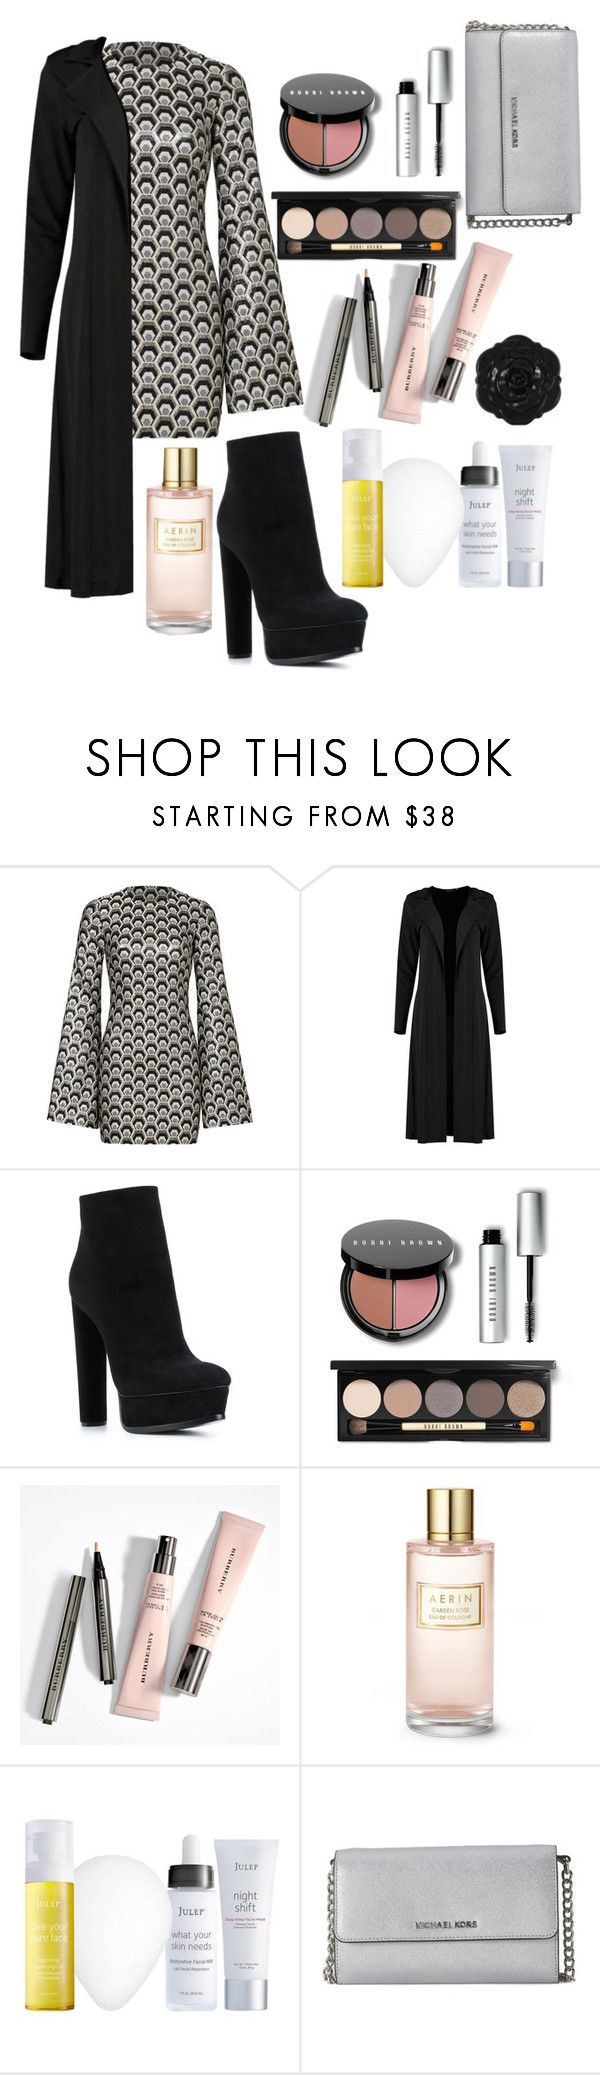 """Duster Coat and Dress"" by o-p-backe ❤ liked on Polyvore featuring Rubin Singer, Boohoo, Casadei, Bobbi Brown Cosmetics, Swissco, Estée Lauder, Julep and Michael Kors"